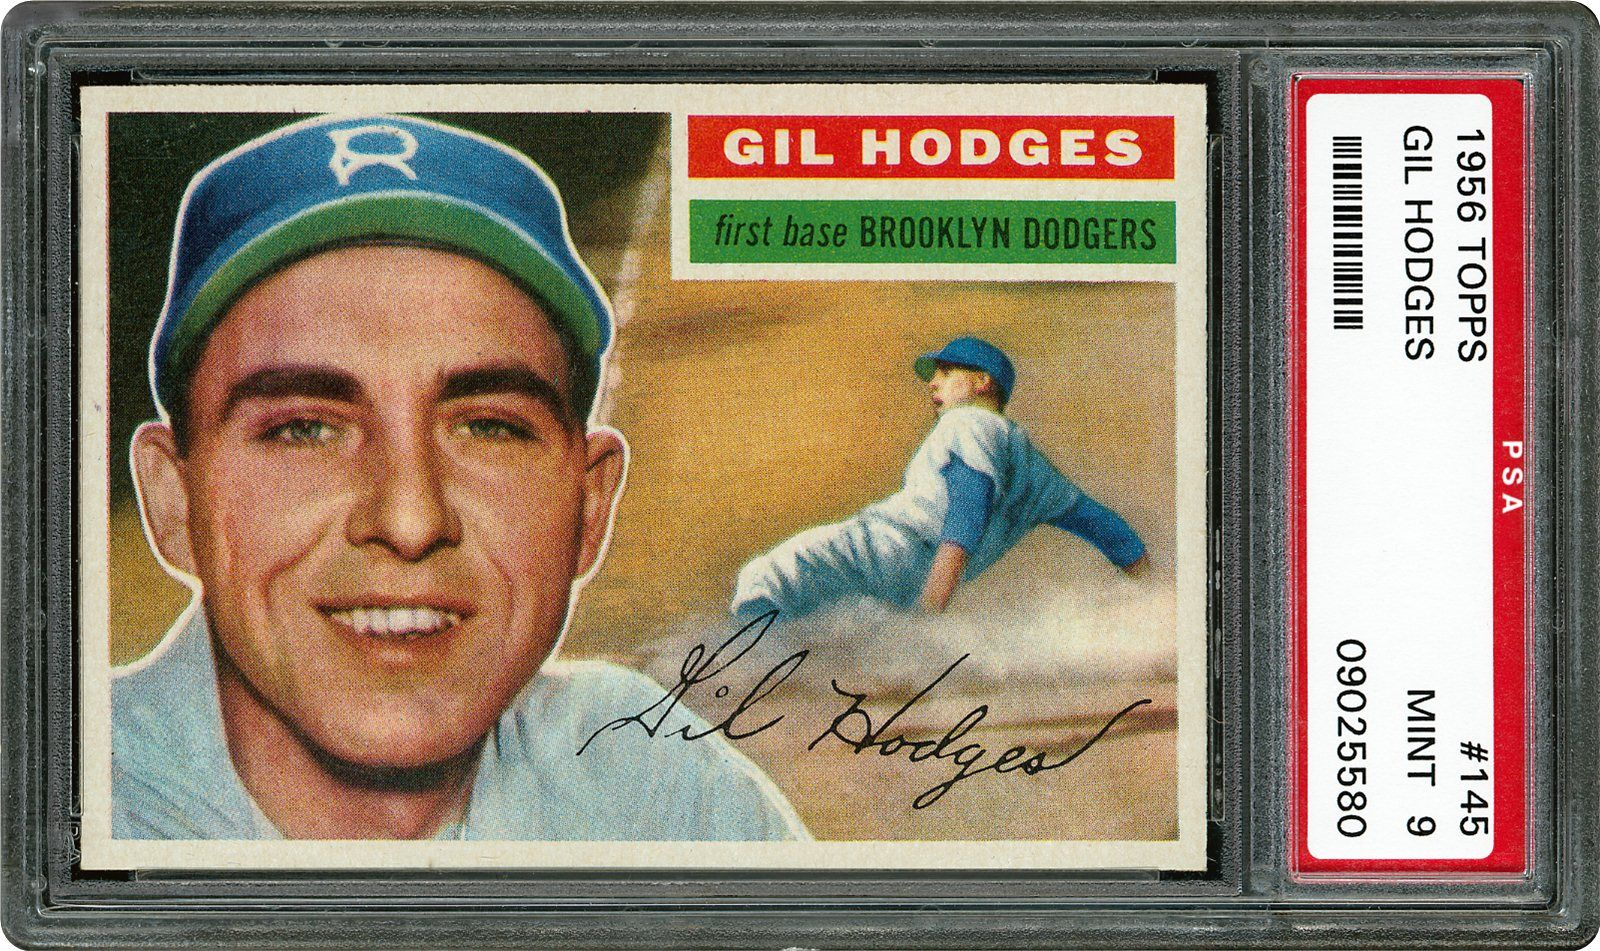 1956 Topps Gil Hodges Psa Cardfacts